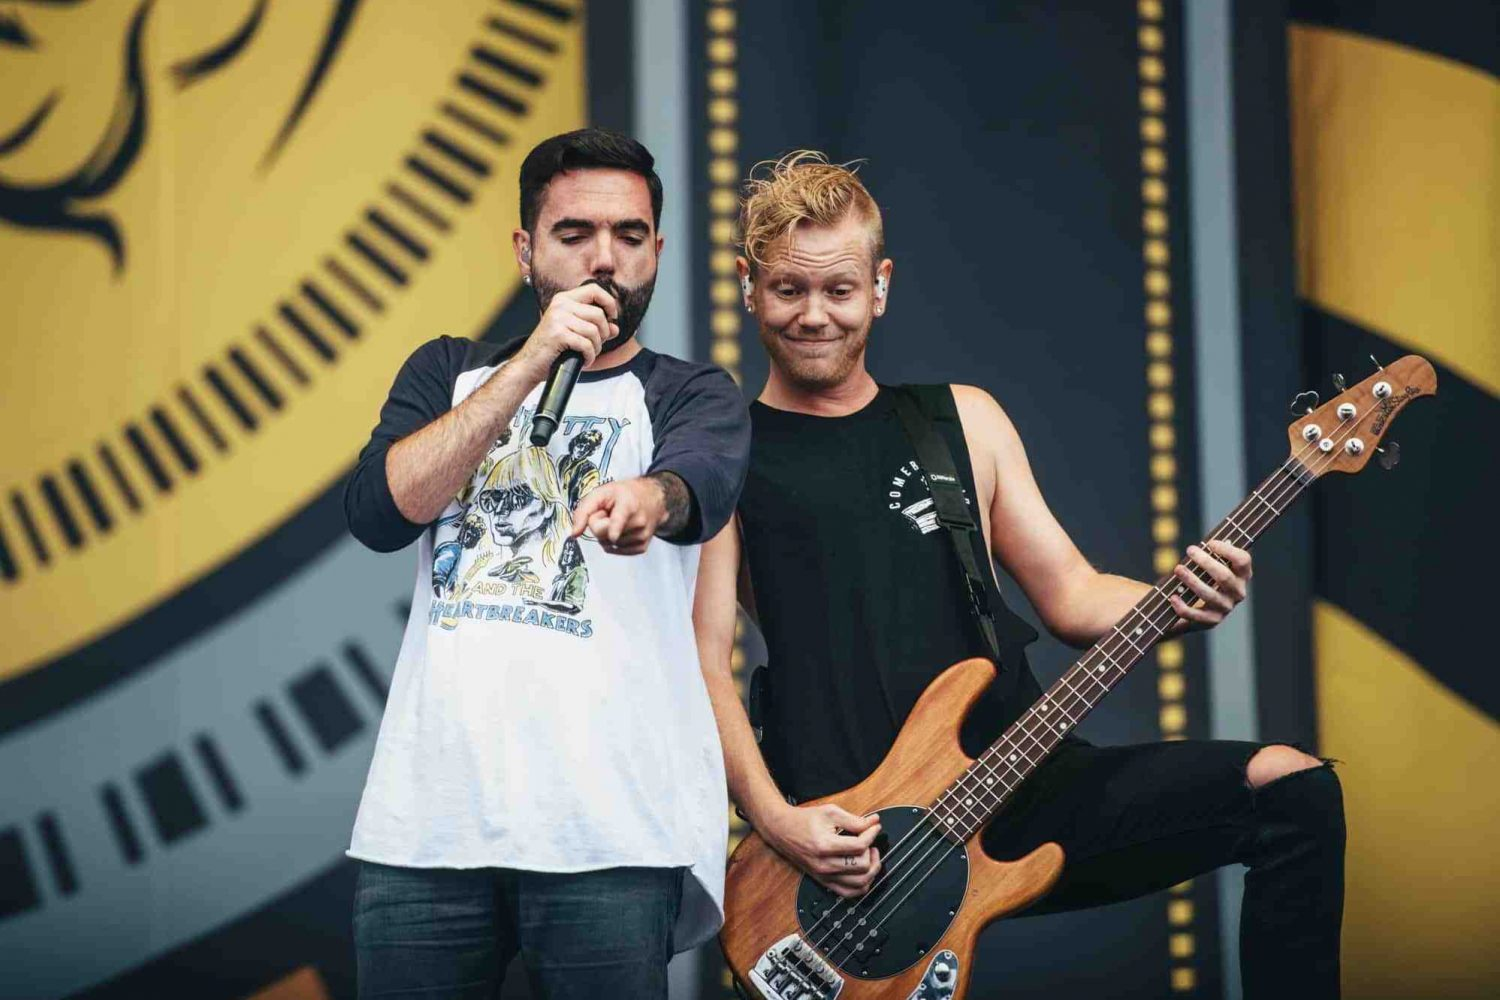 A Day To Remember have announced some UK shows, including special 'day two' Slam Dunk sets